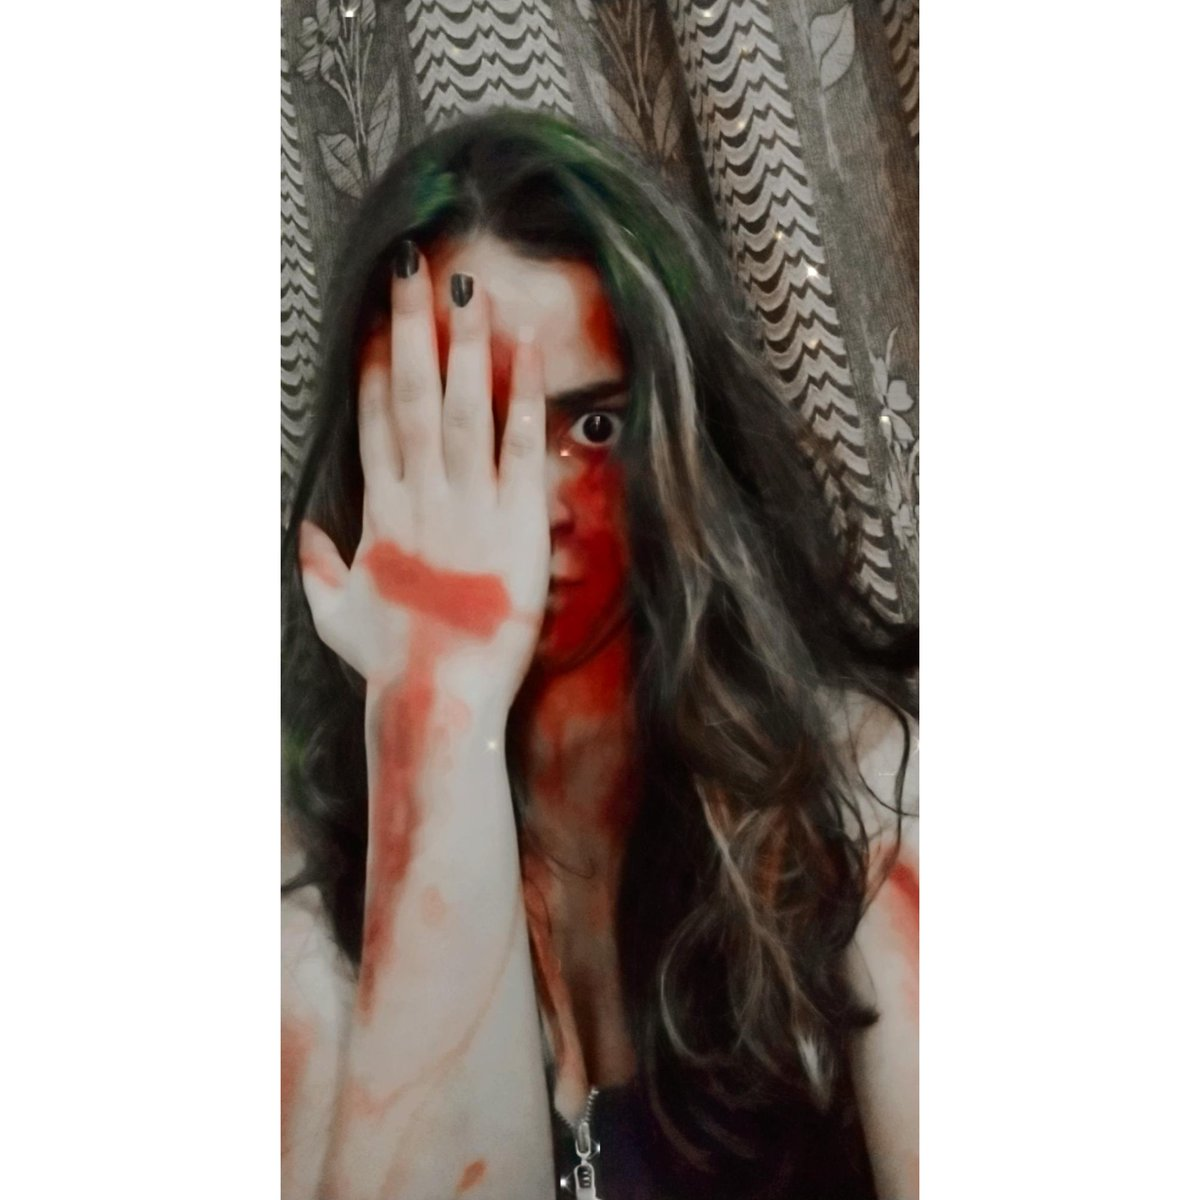 """Monsters are Real,  Ghosts are real too,  They live inside Us ,  And Sometimes They  WIN"" 😈🖤 Vardat Tv serial for Star Bharat channel. Shoot done.🤗 Coming soon In New look😈💀 #tvserial #starbharat  #Vardat #comingsoon #shivanisharma #devil #devilbiss #herror #devilgirl https://t.co/AB1Gc8UZCt"